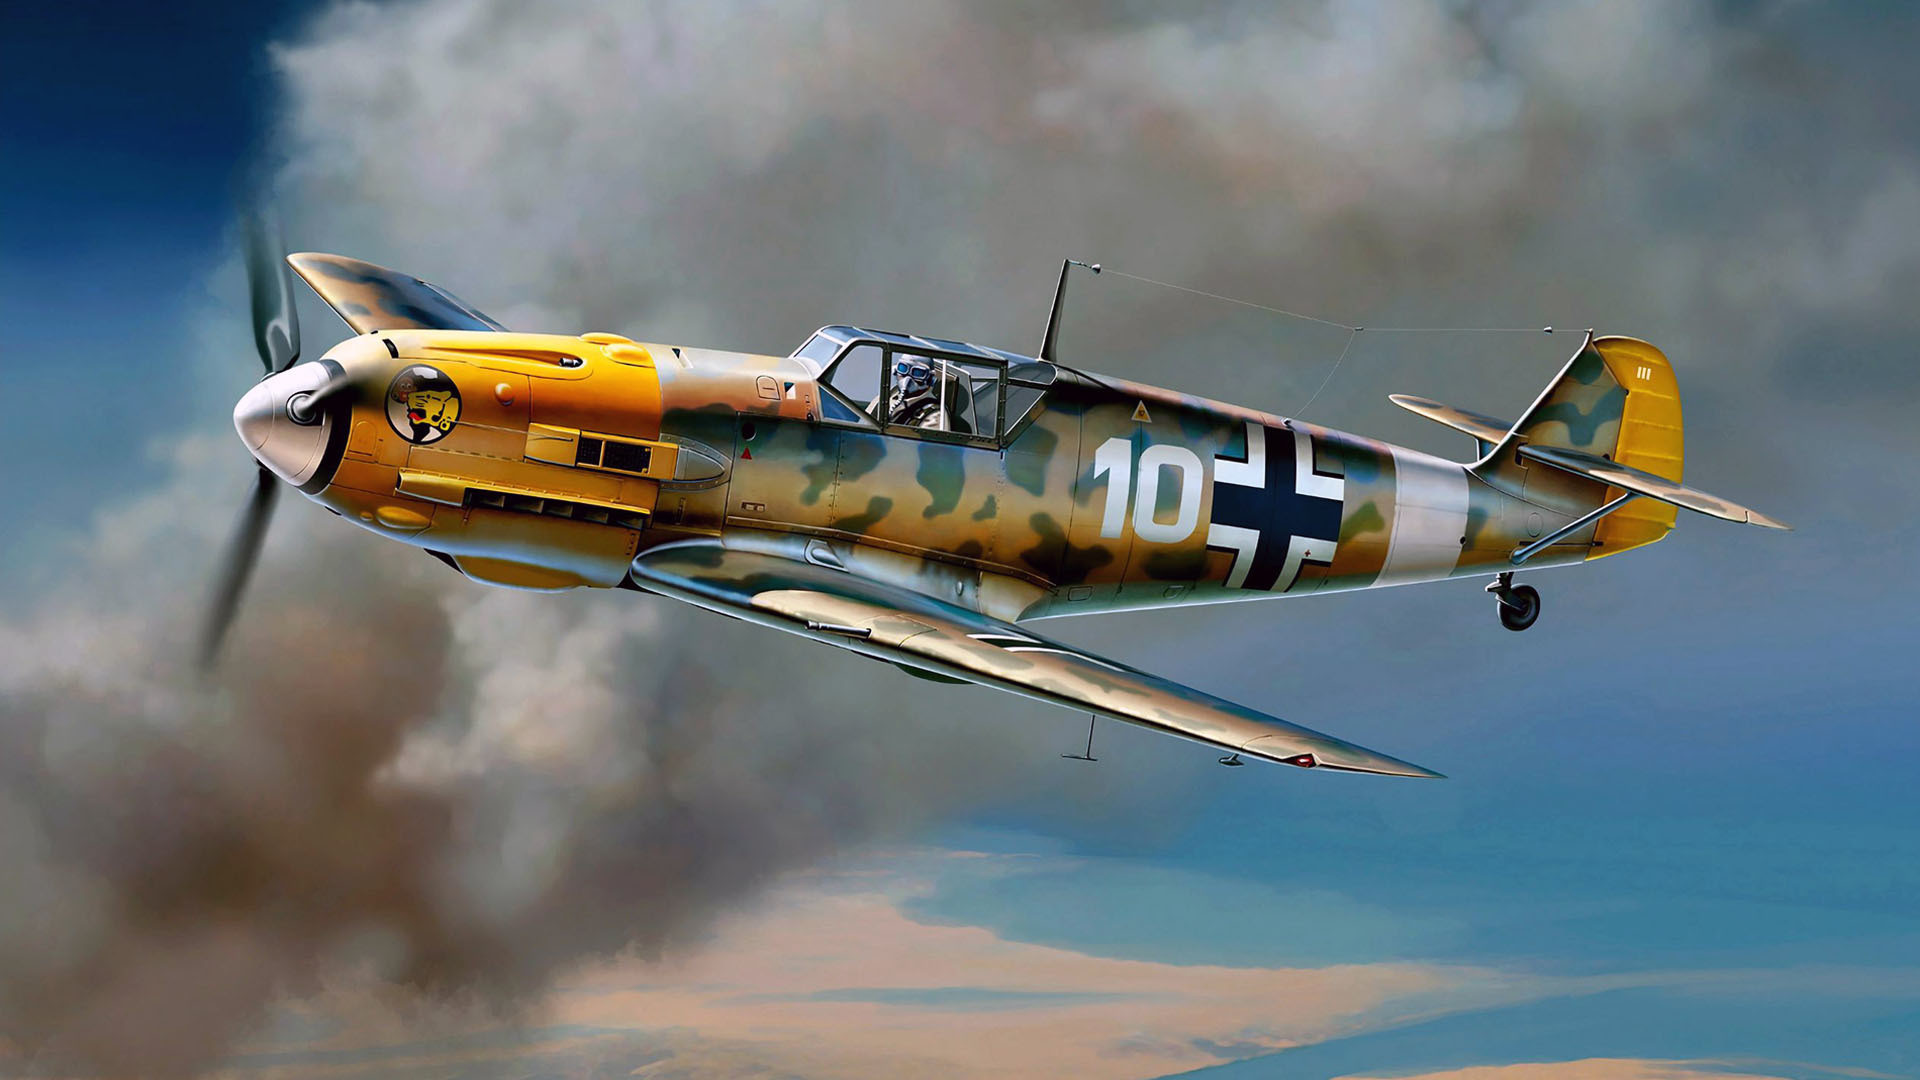 3666 best Flight images on Pinterest   Military aircraft, Aviation art and  Planes